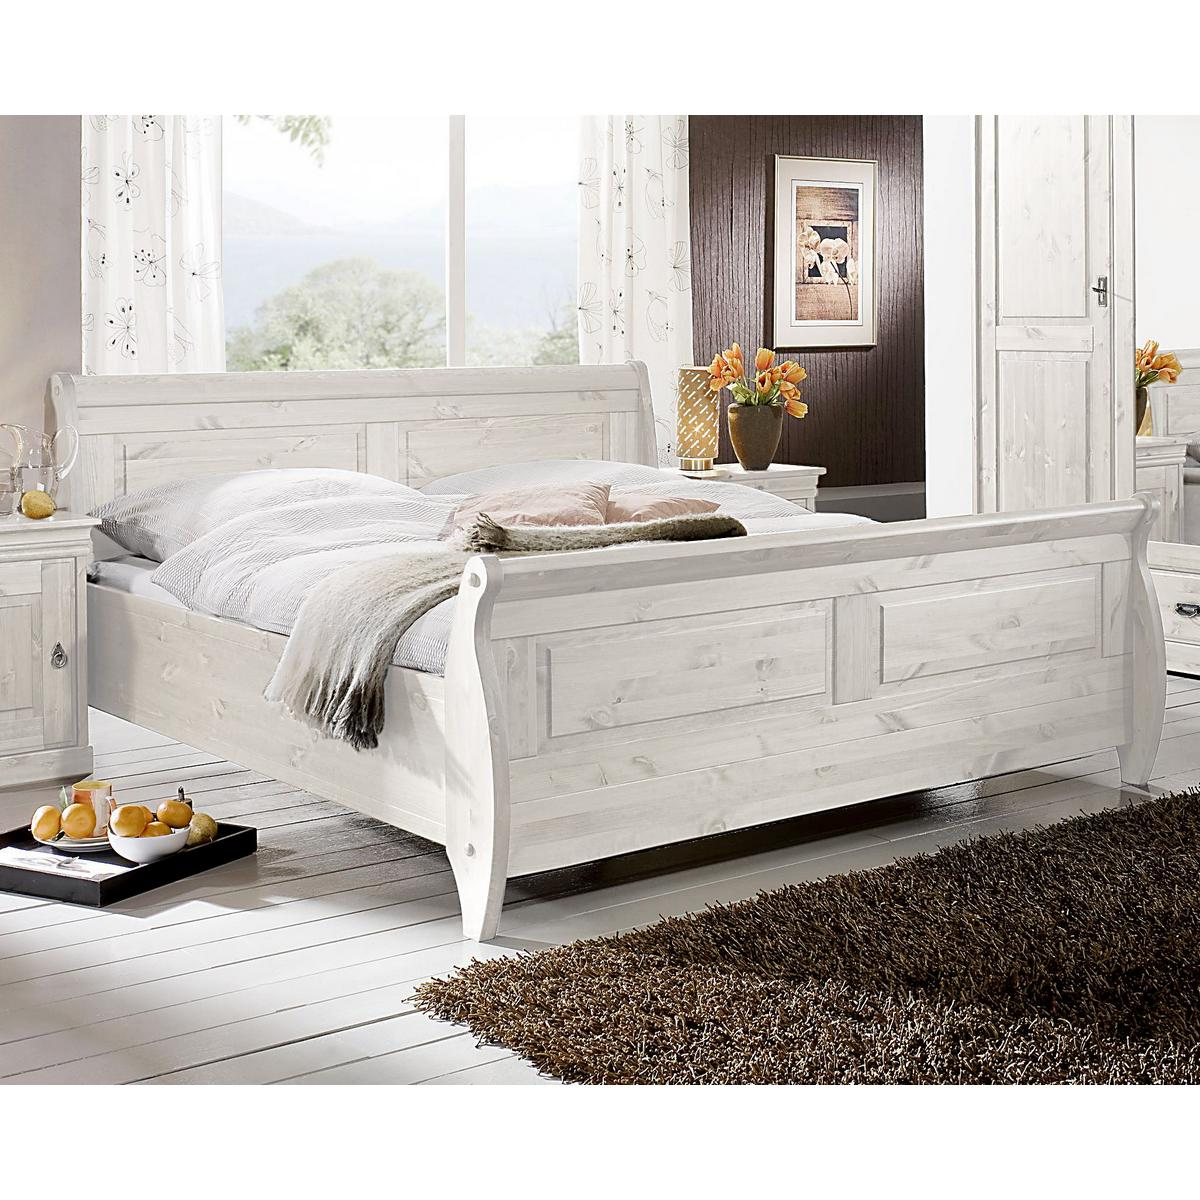 schlafzimmer kiefer weis lackiert das beste aus. Black Bedroom Furniture Sets. Home Design Ideas